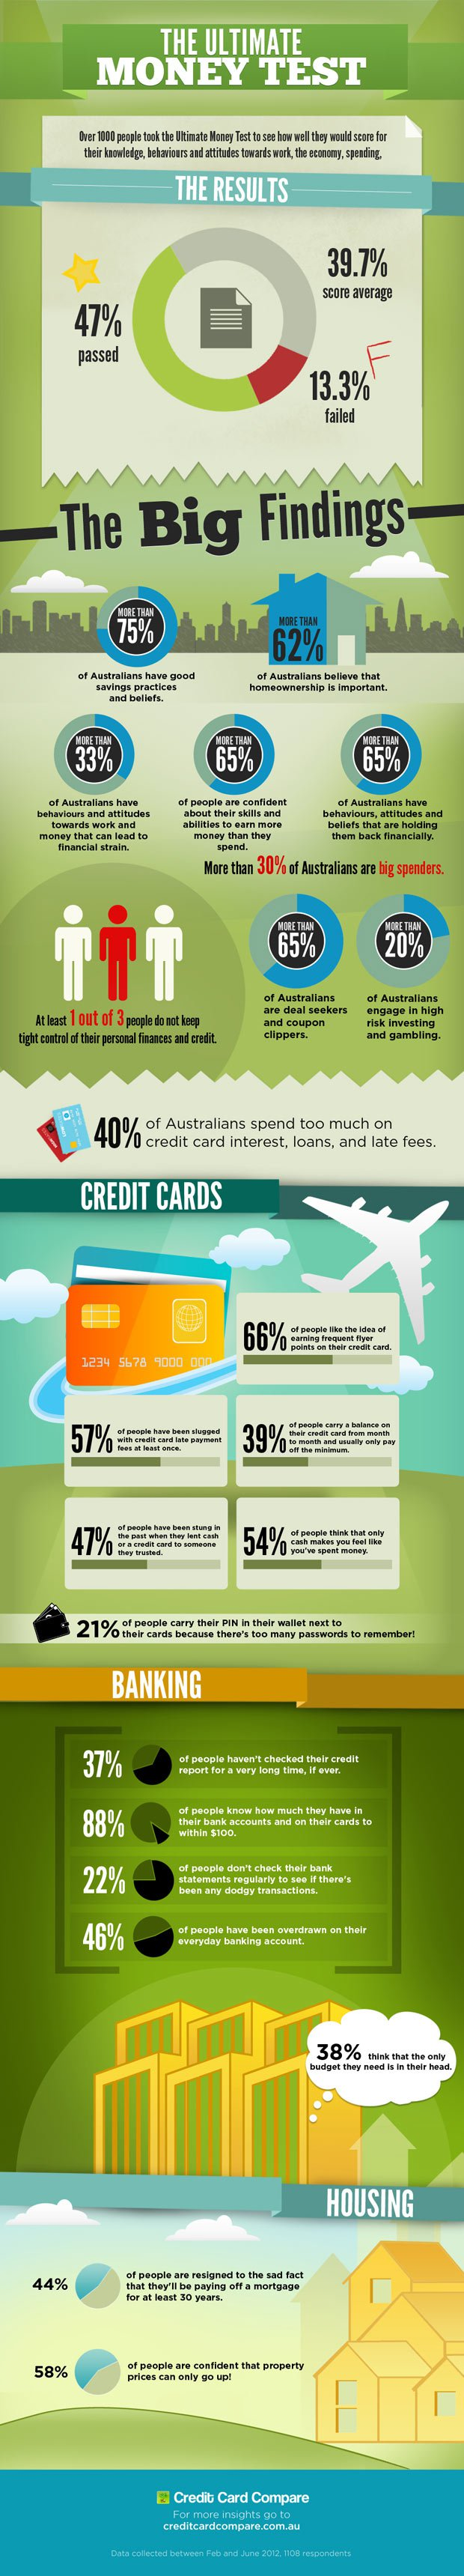 Ultimate Money Test Infographic (2012)